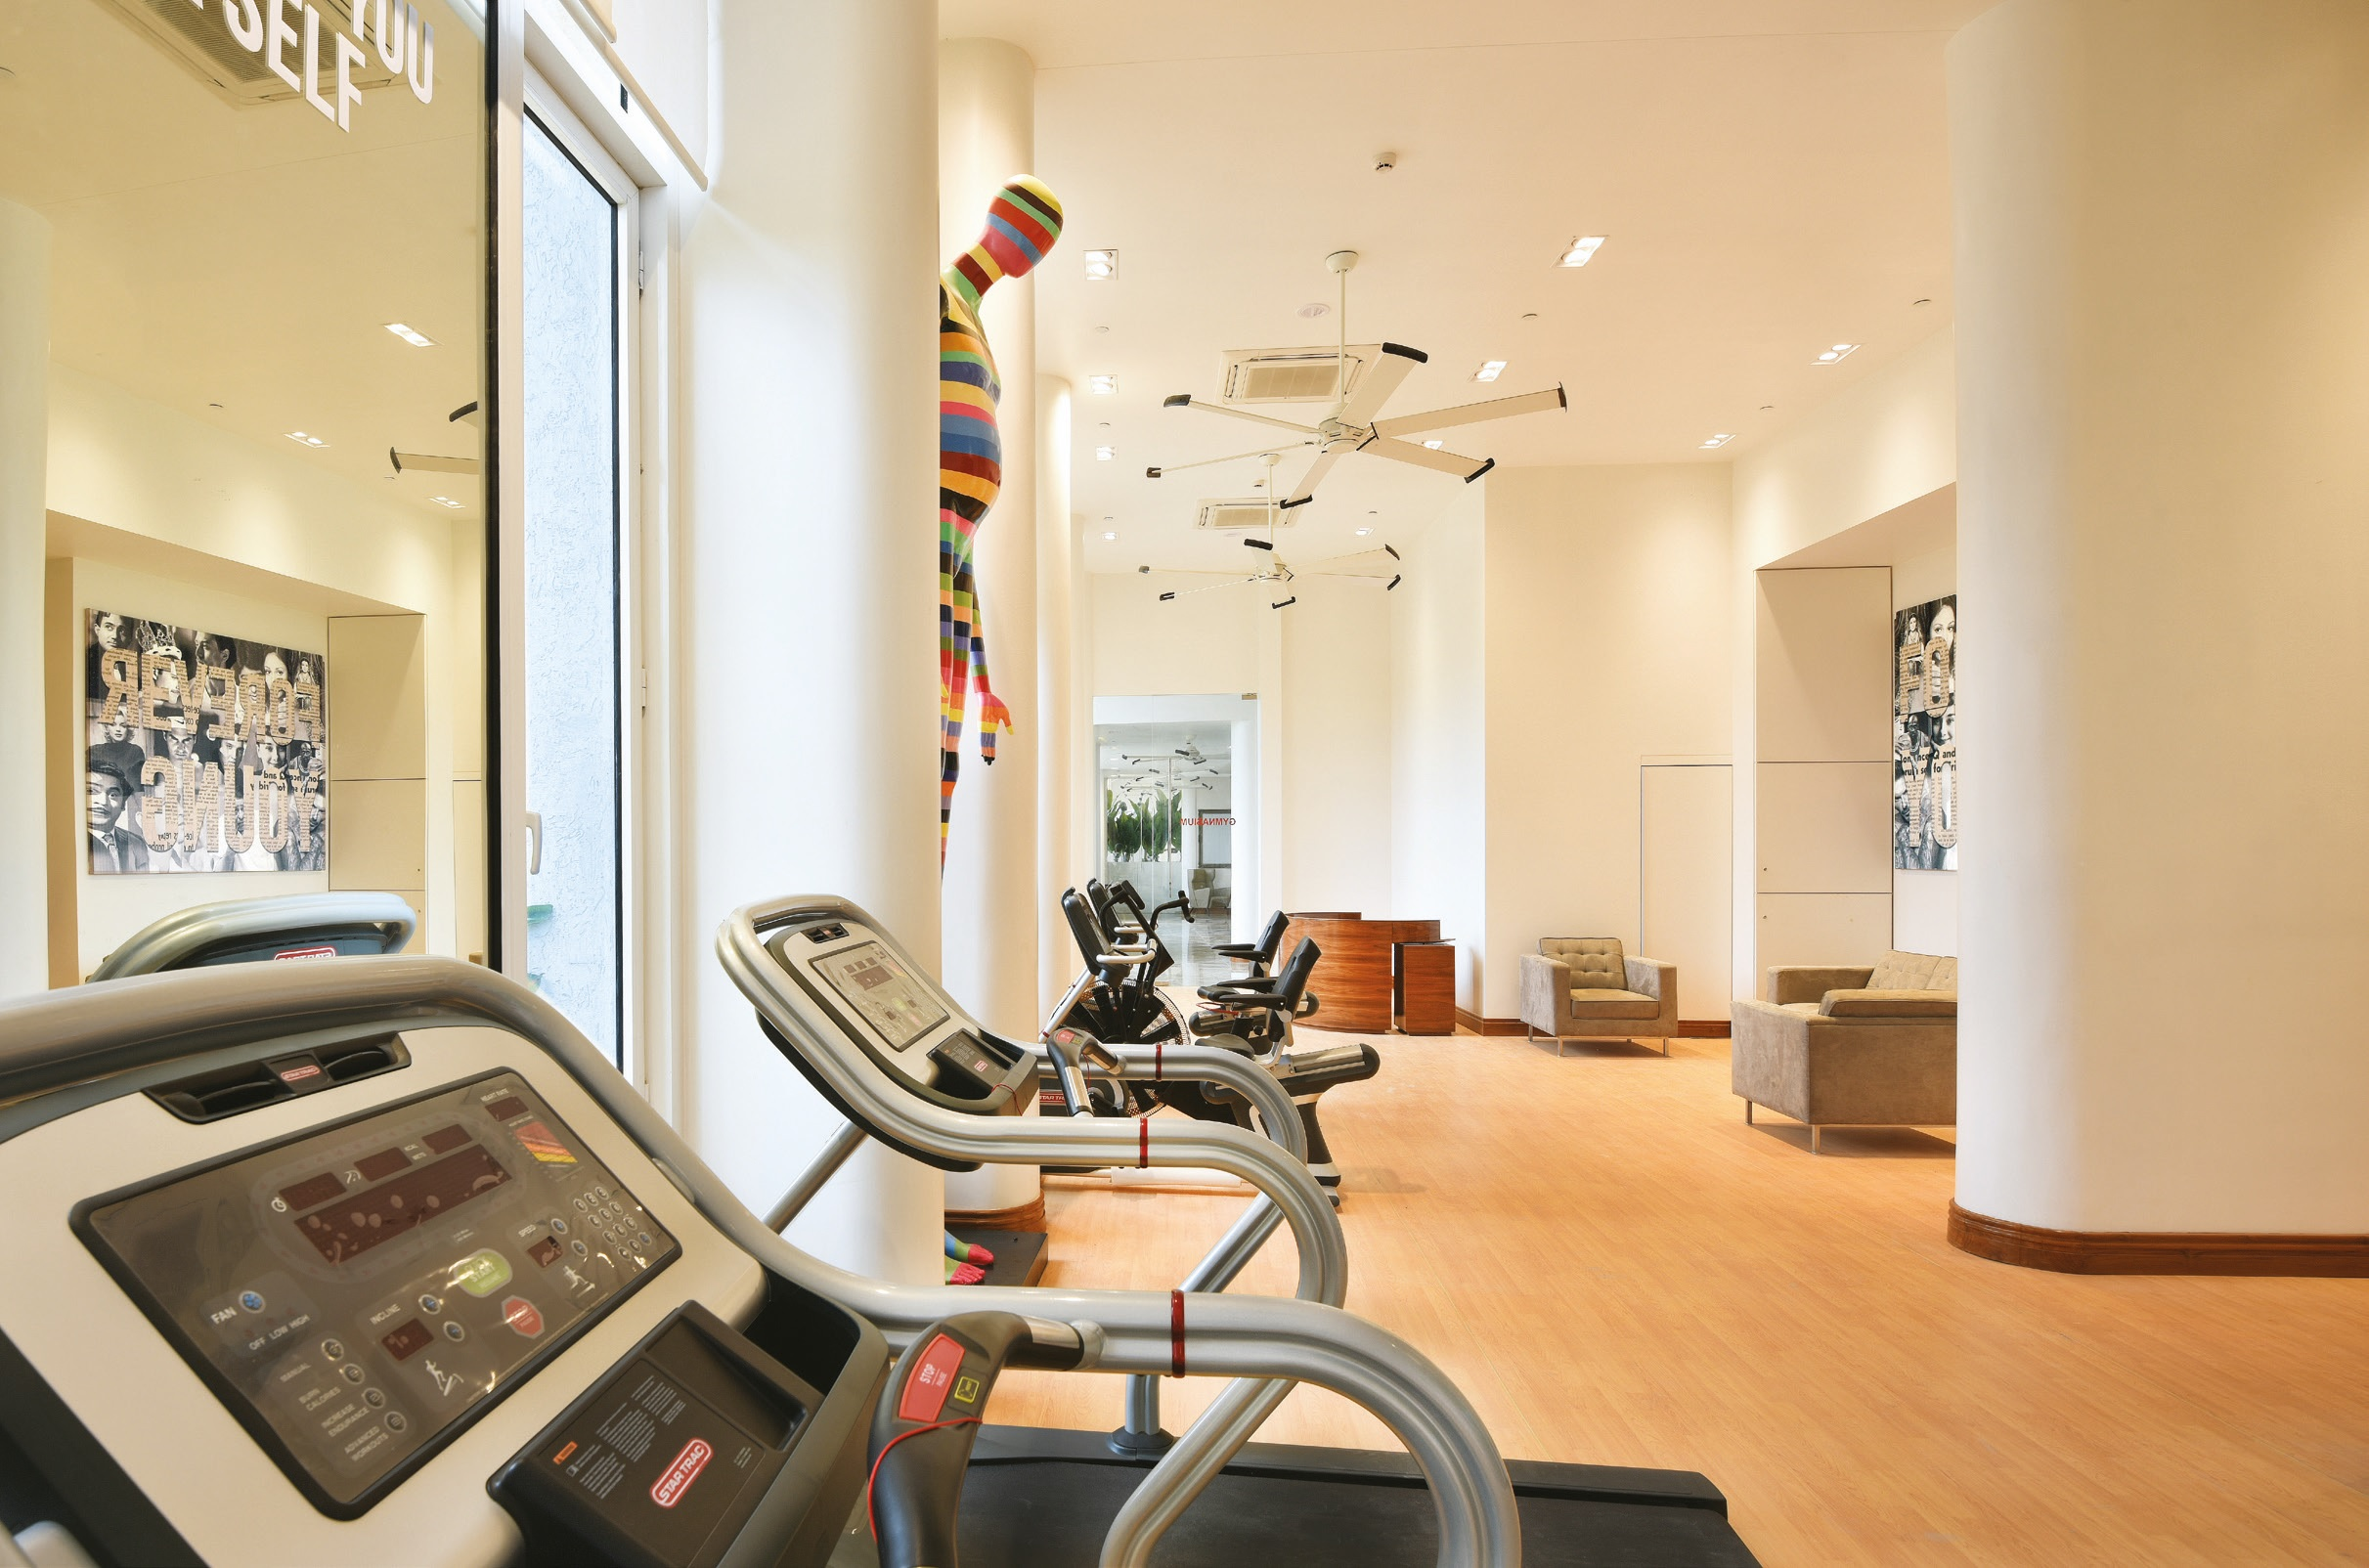 ajmera nucleus wing c project amenities features3